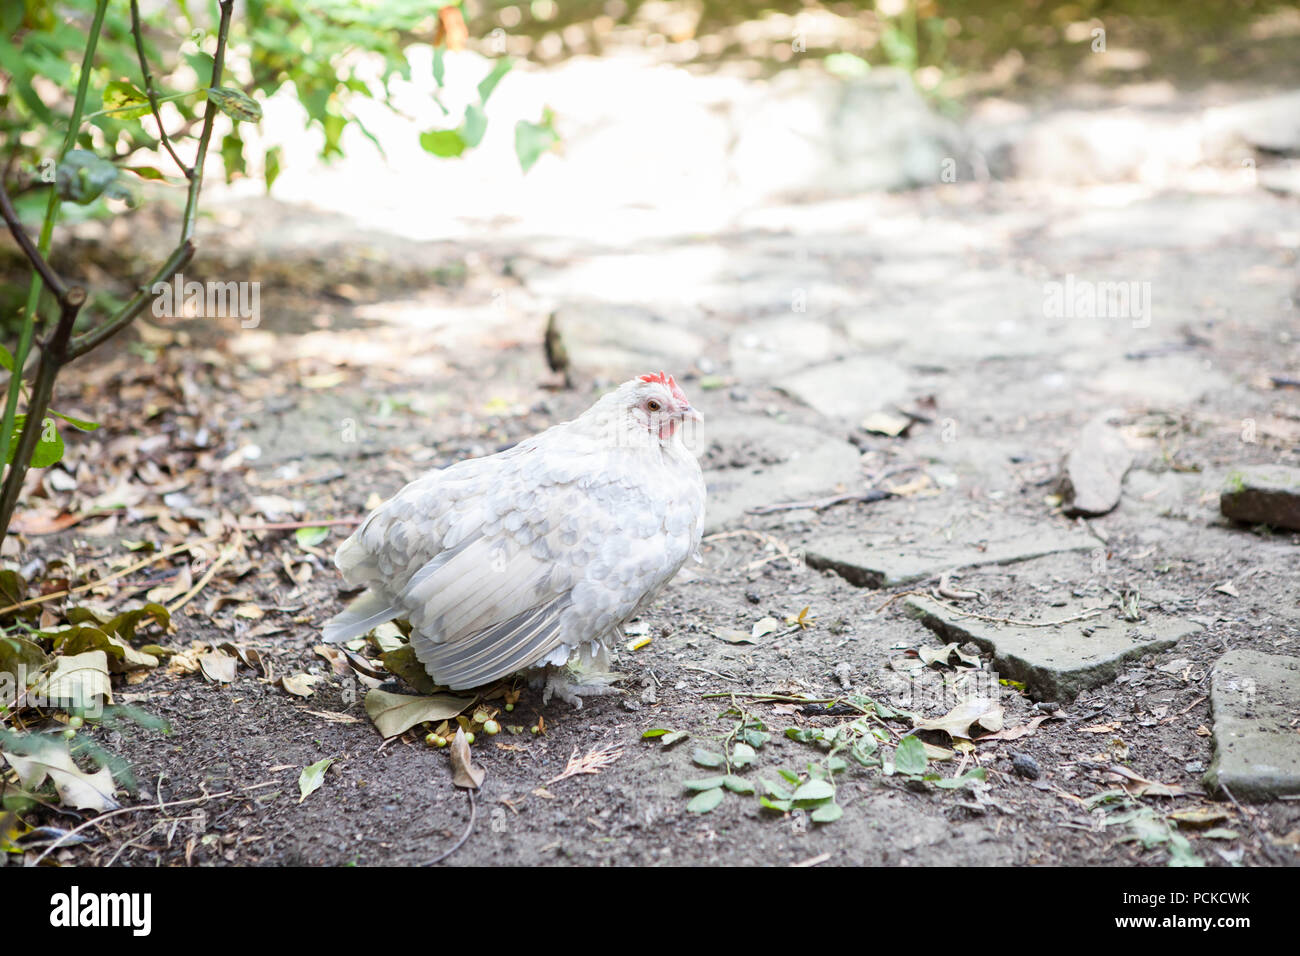 Sablepoot Hen Chicken - Stock Image